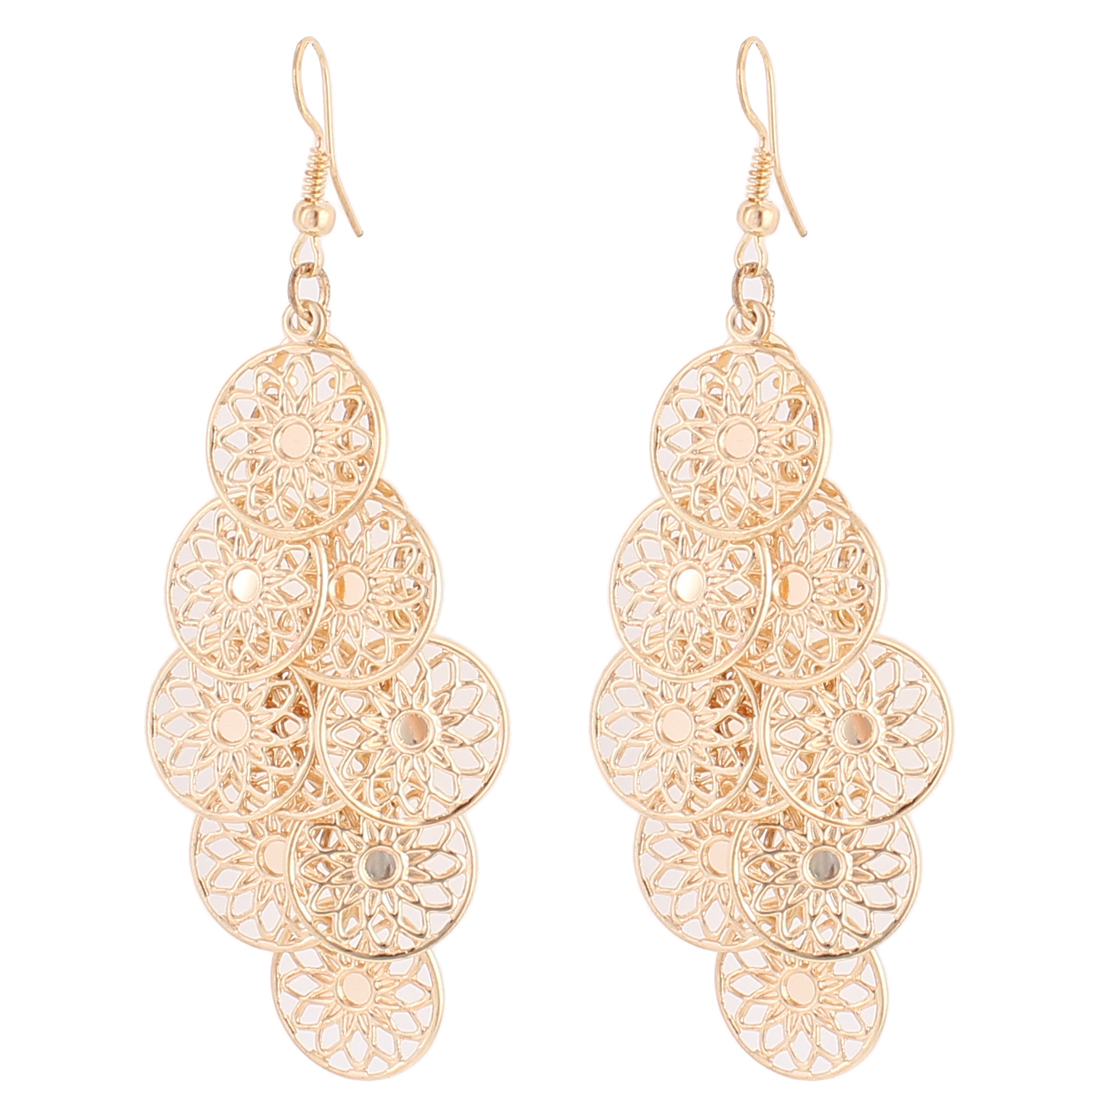 Woman Hollow Flower Circle Dangle Chandelier Fish Hook Earrings Gold Tone Pair